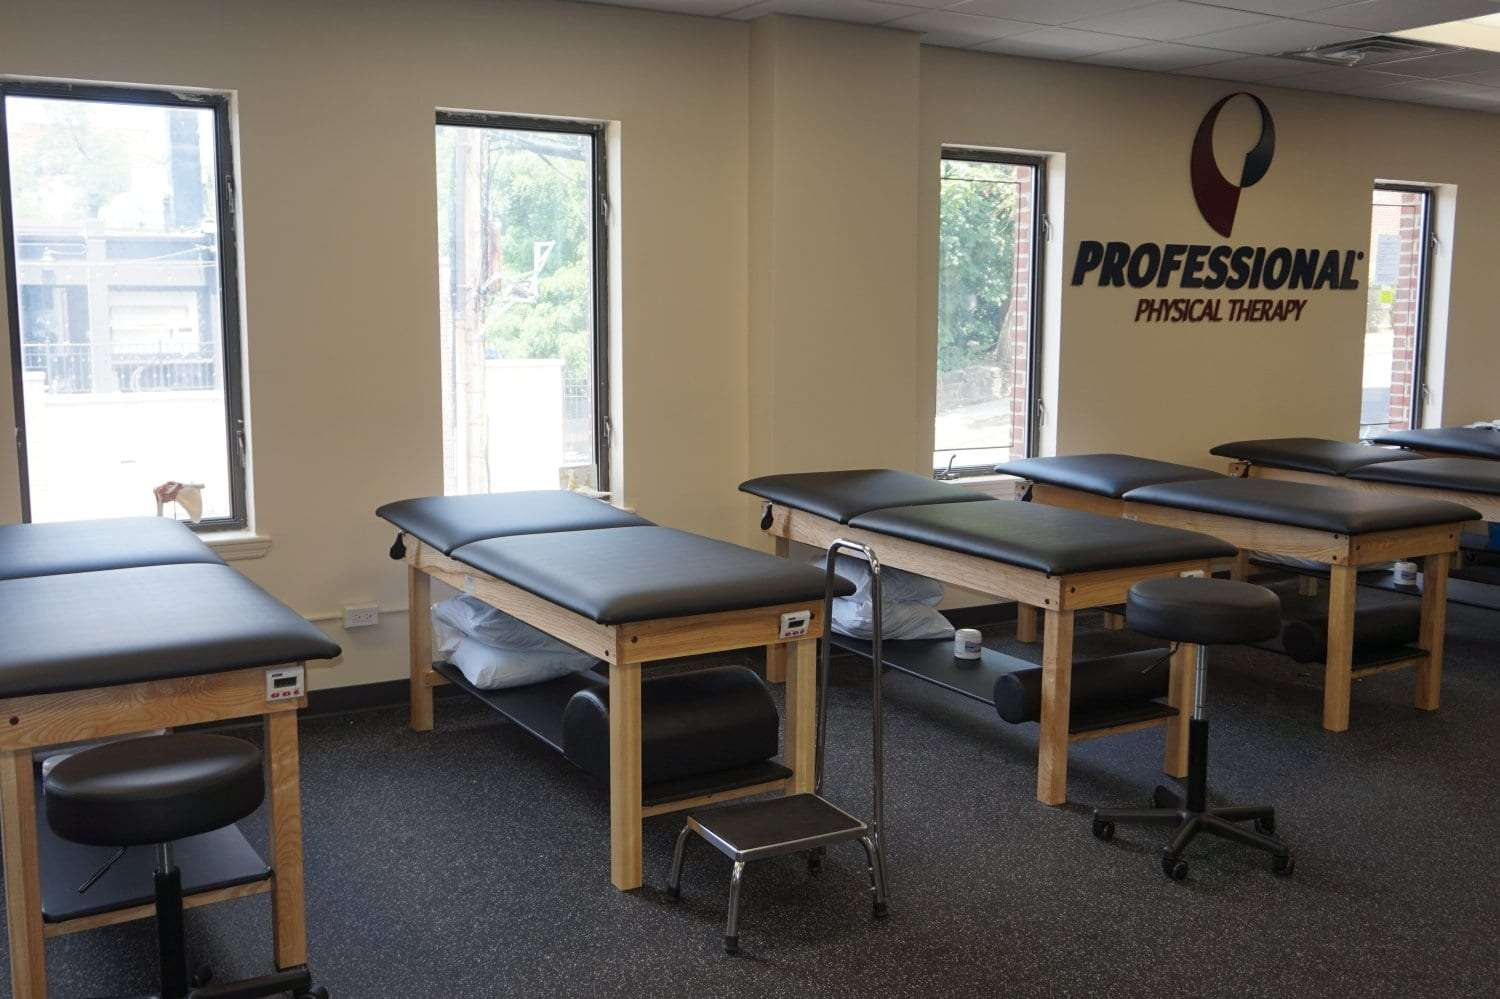 This is a photo of the inside of our physical therapy clinic in Mount Vernon, New York at Fleetwood.